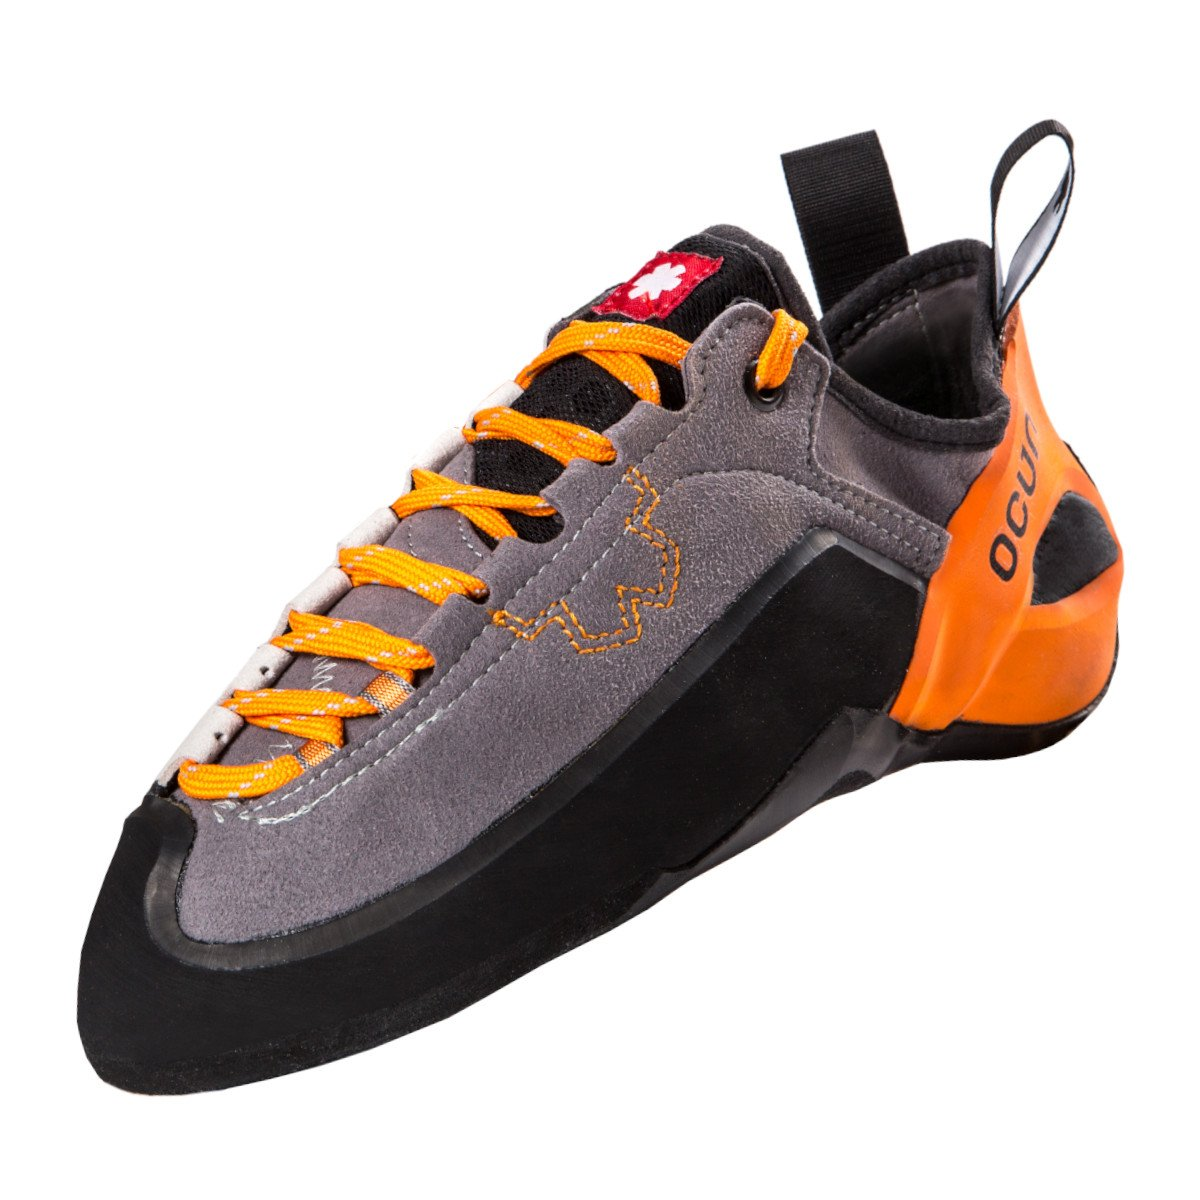 Ocun Jett LU climbing shoe, in black and grey colours with orange laces and heel